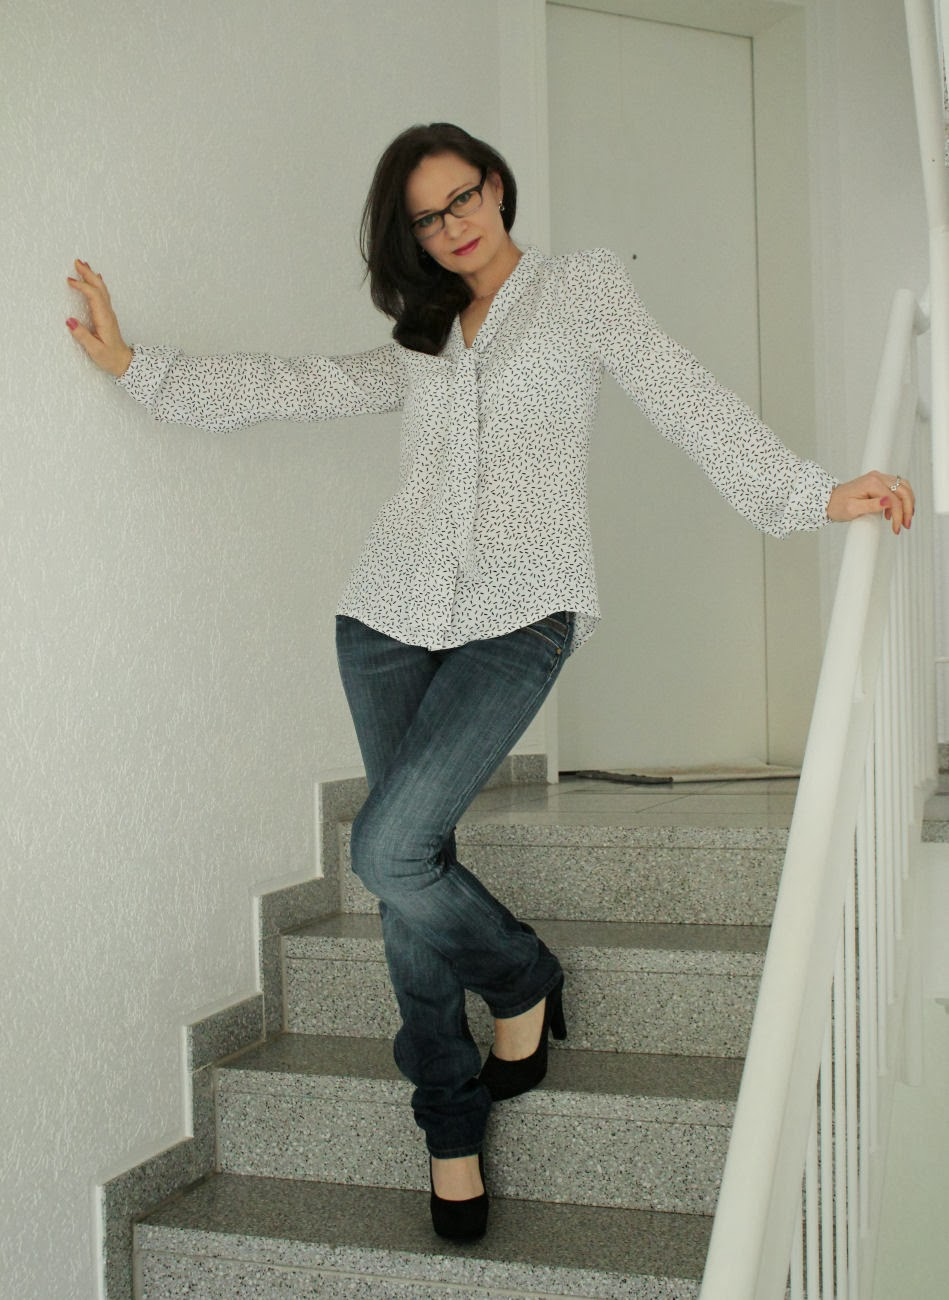 http://sewinggalaxy.blogspot.de/2013/12/flemings-bluse.html